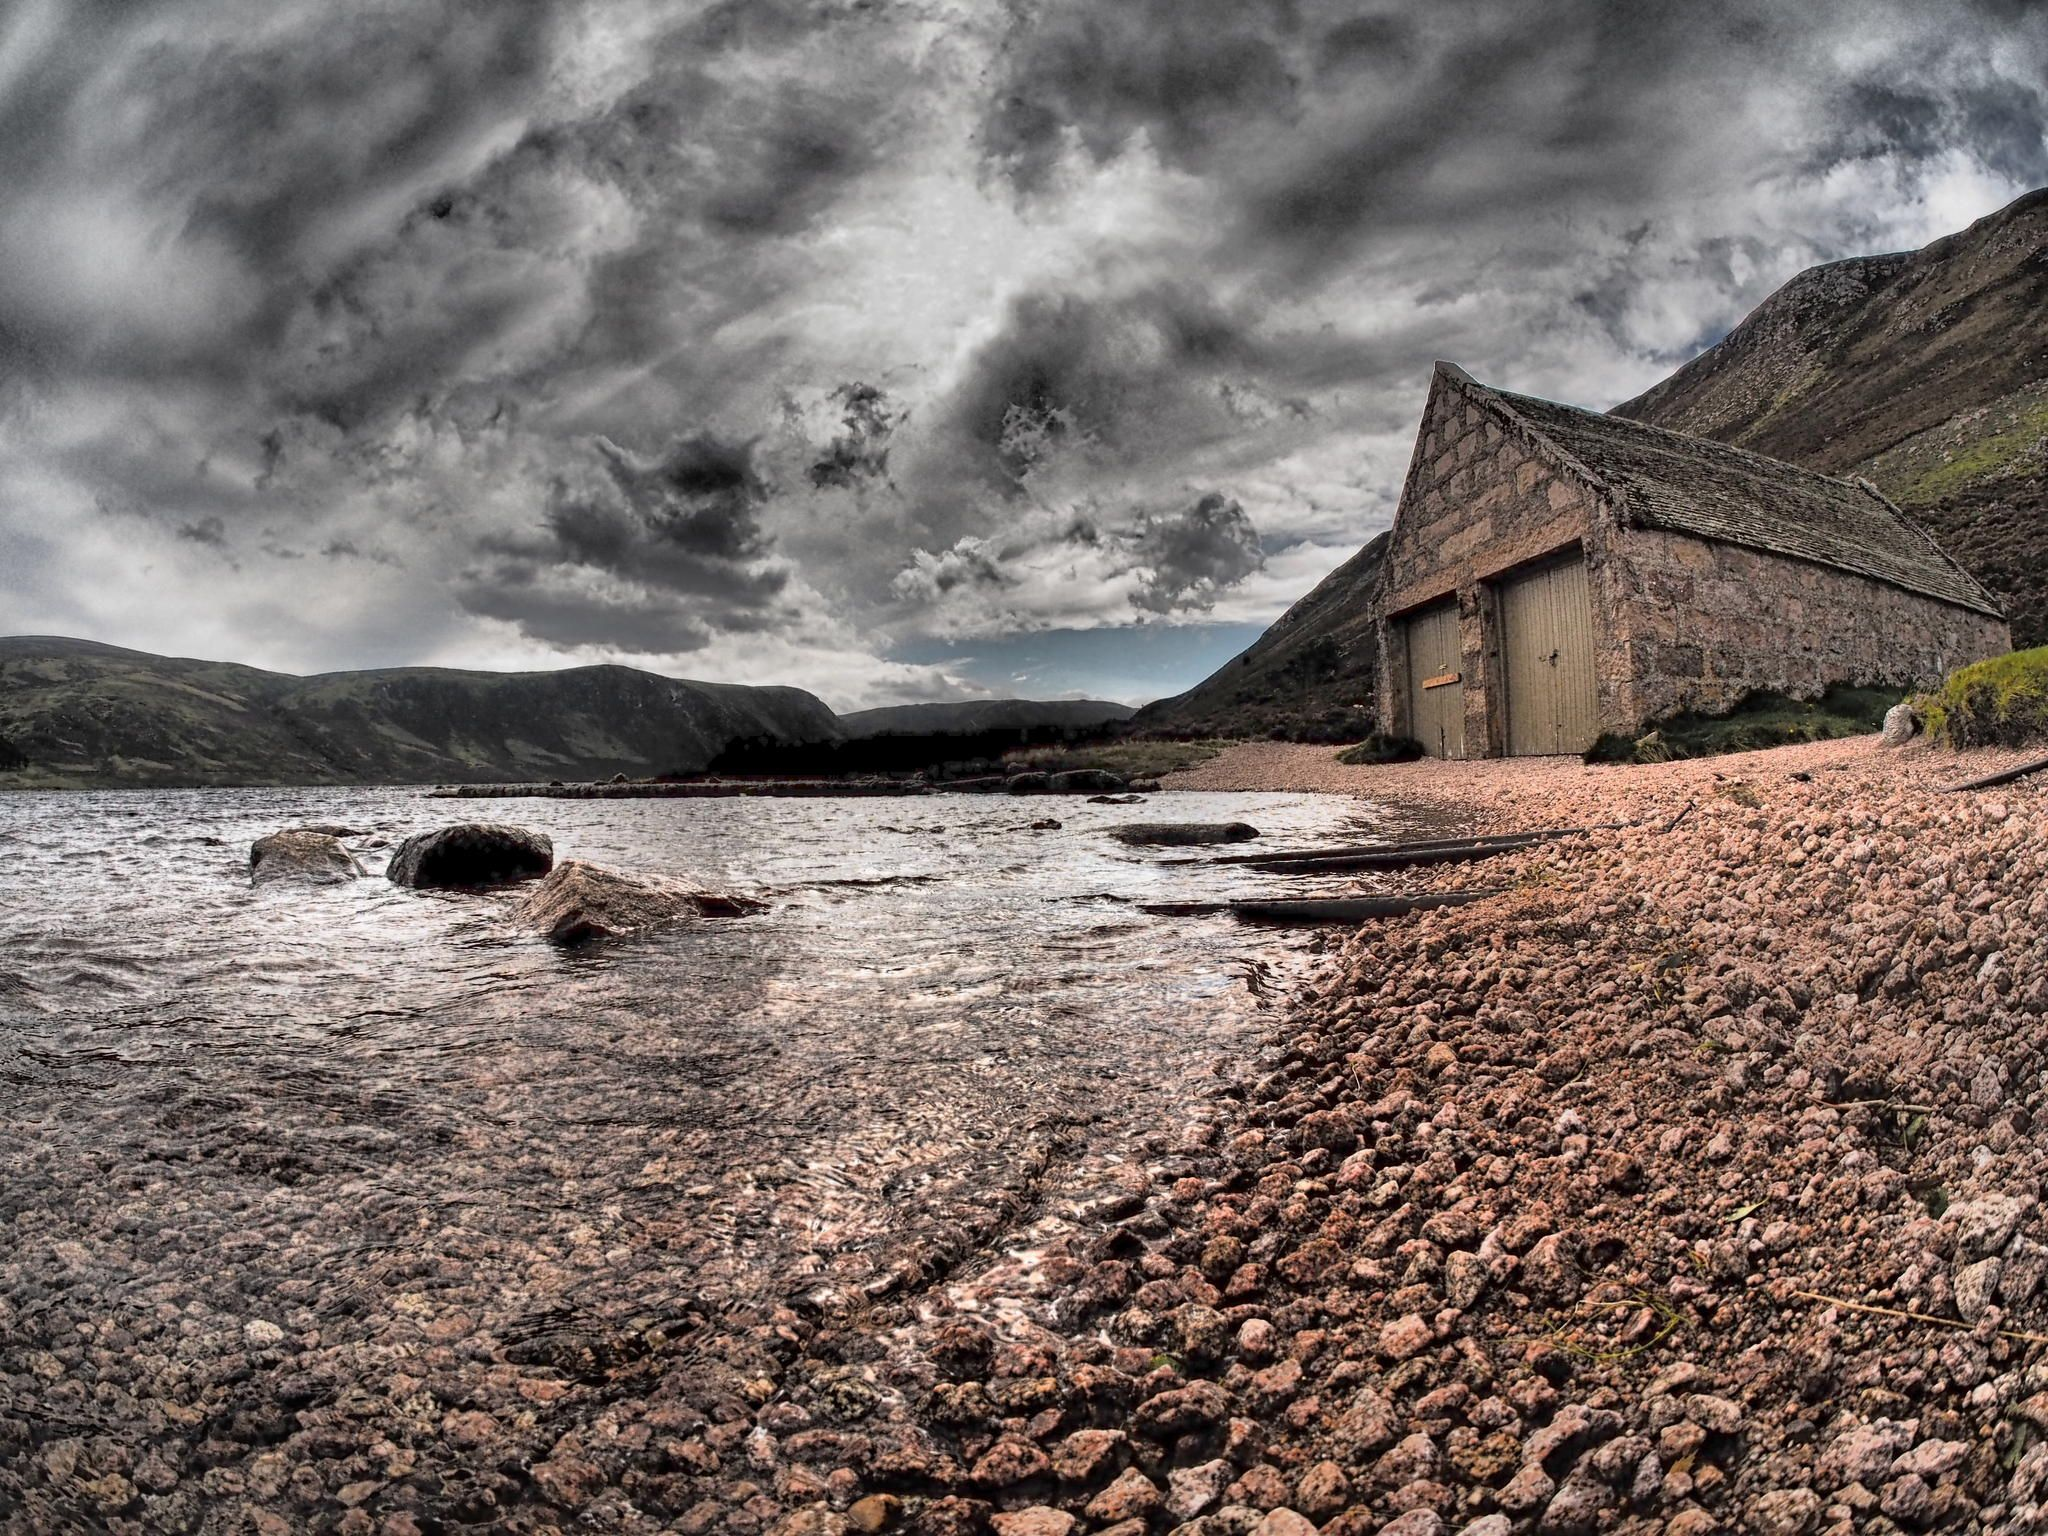 The boathouse at Loch Muick, The Cairngorms, Scotland.